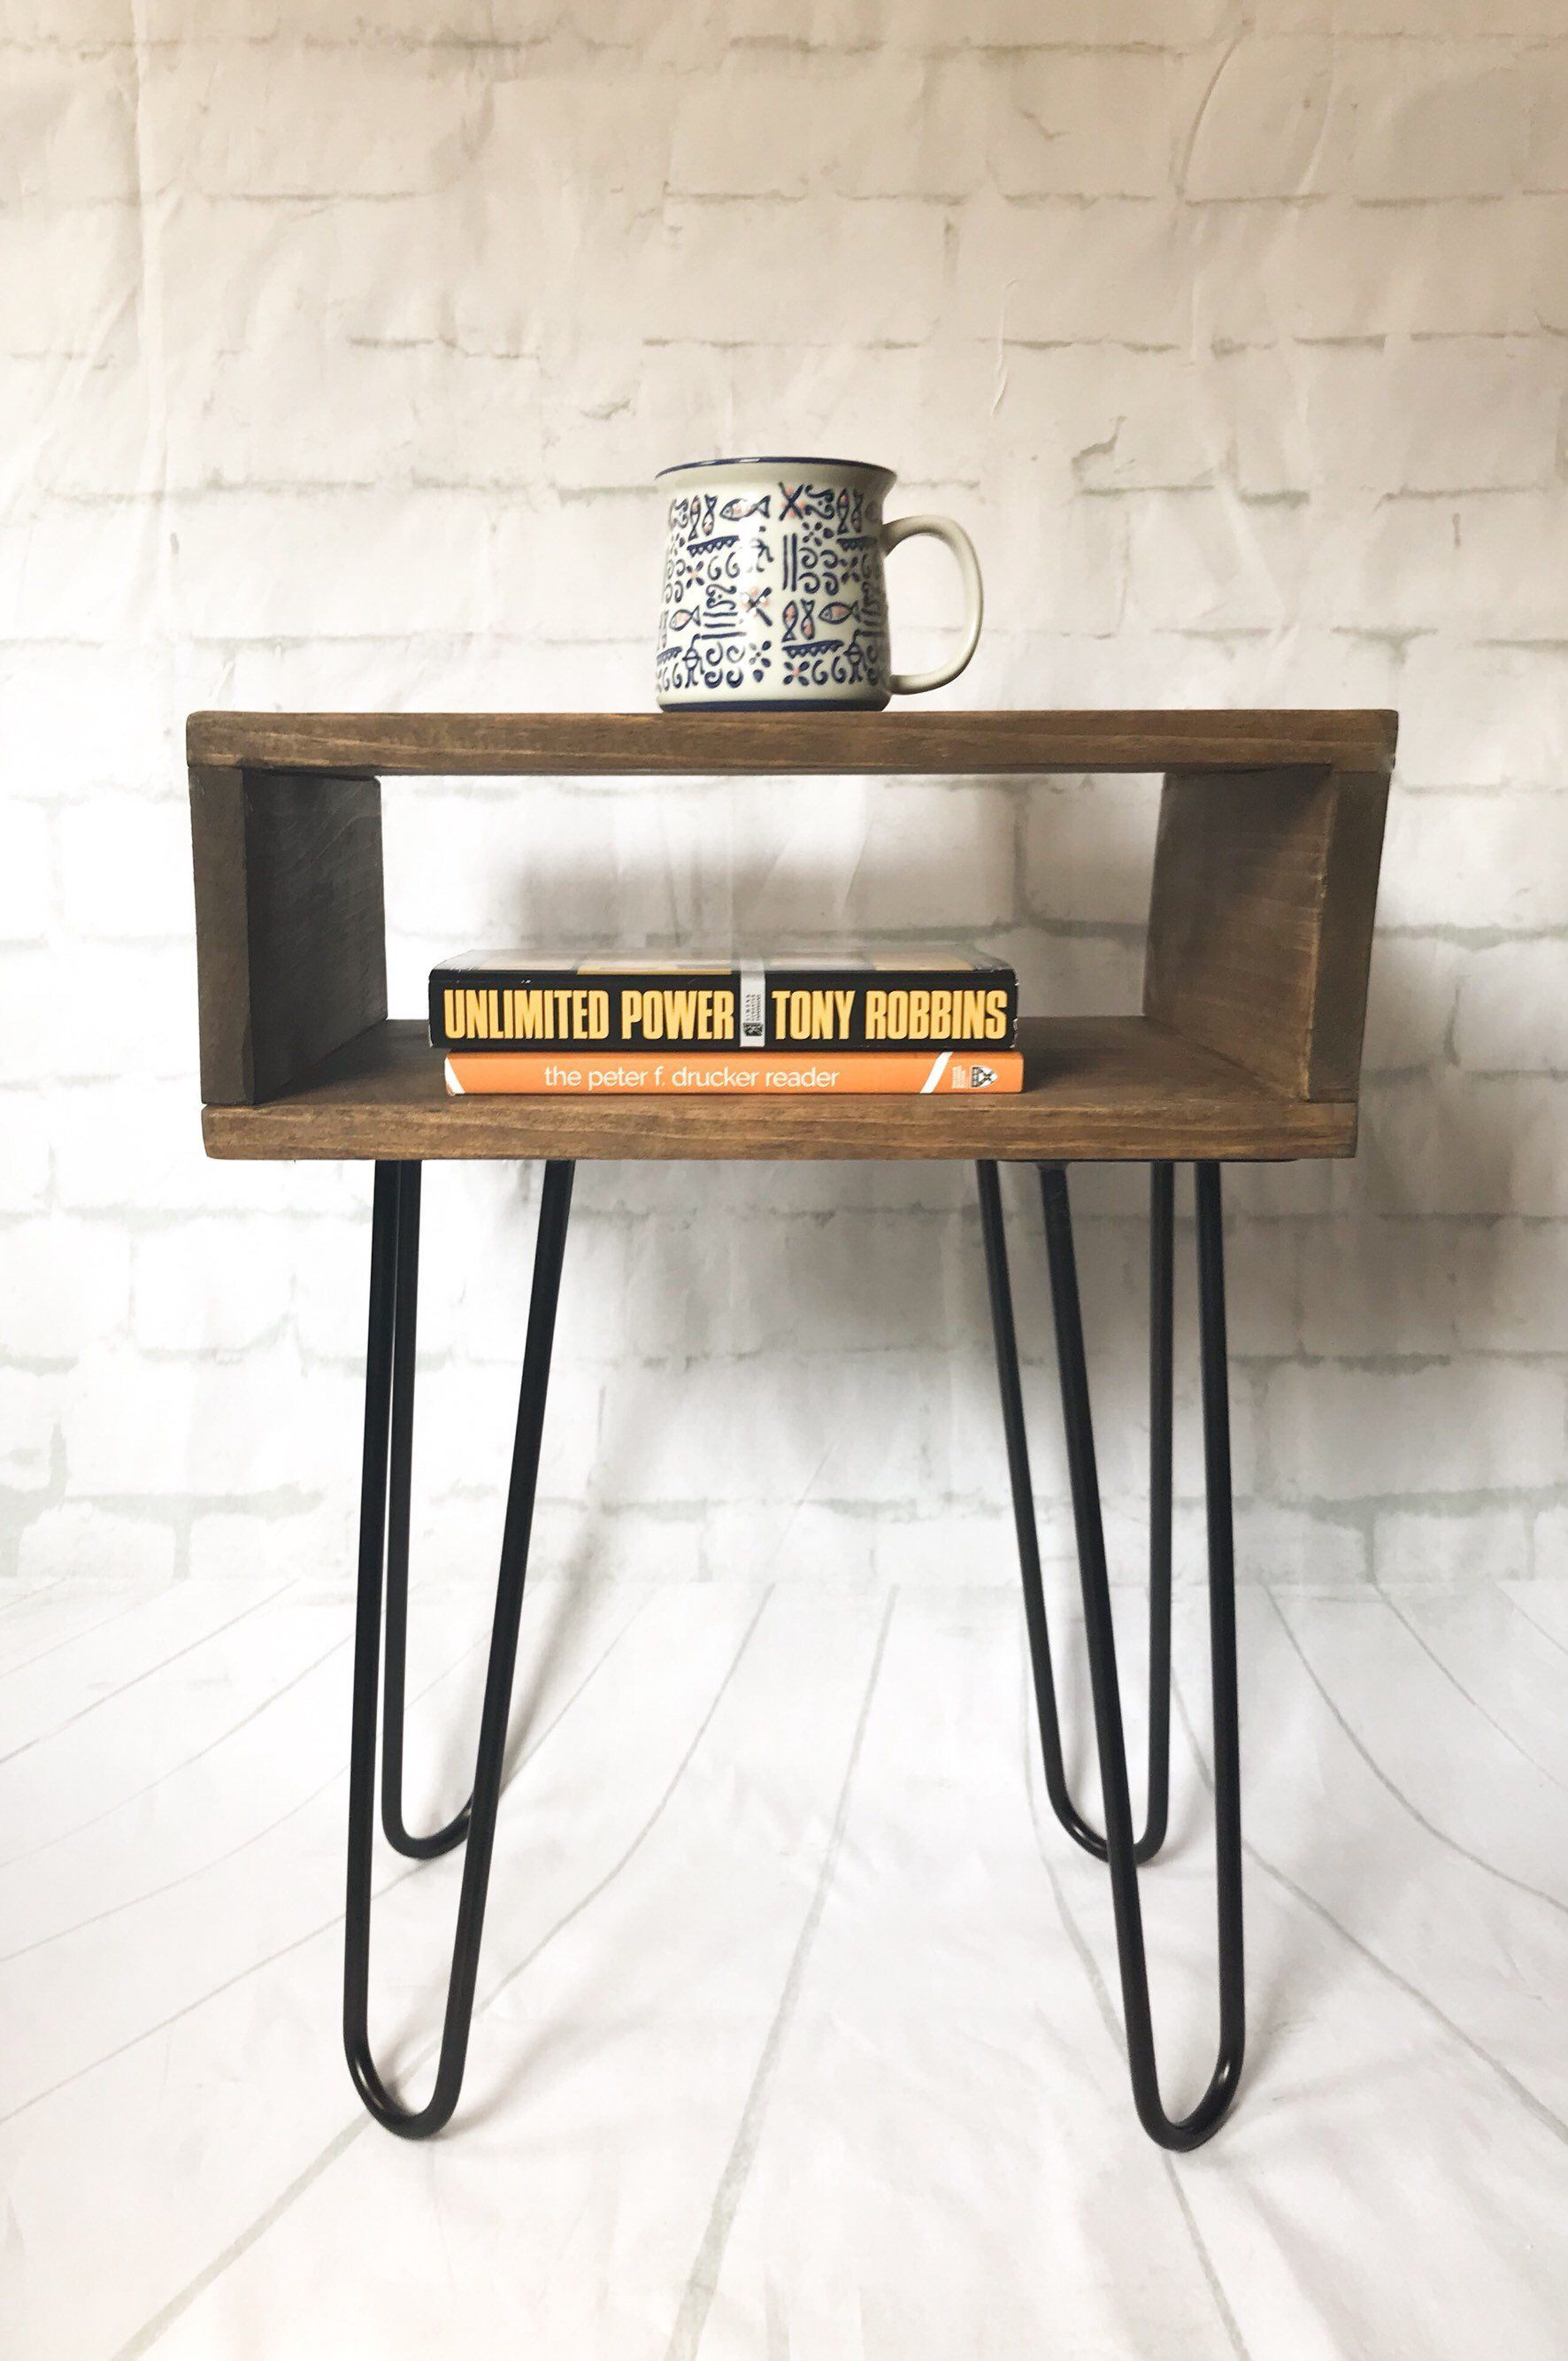 handmade real wood nightstand side table mid century modern hairpin leg accent excited share the latest addition etsy rustic walnut bookshelf sitting legs industrial chinese